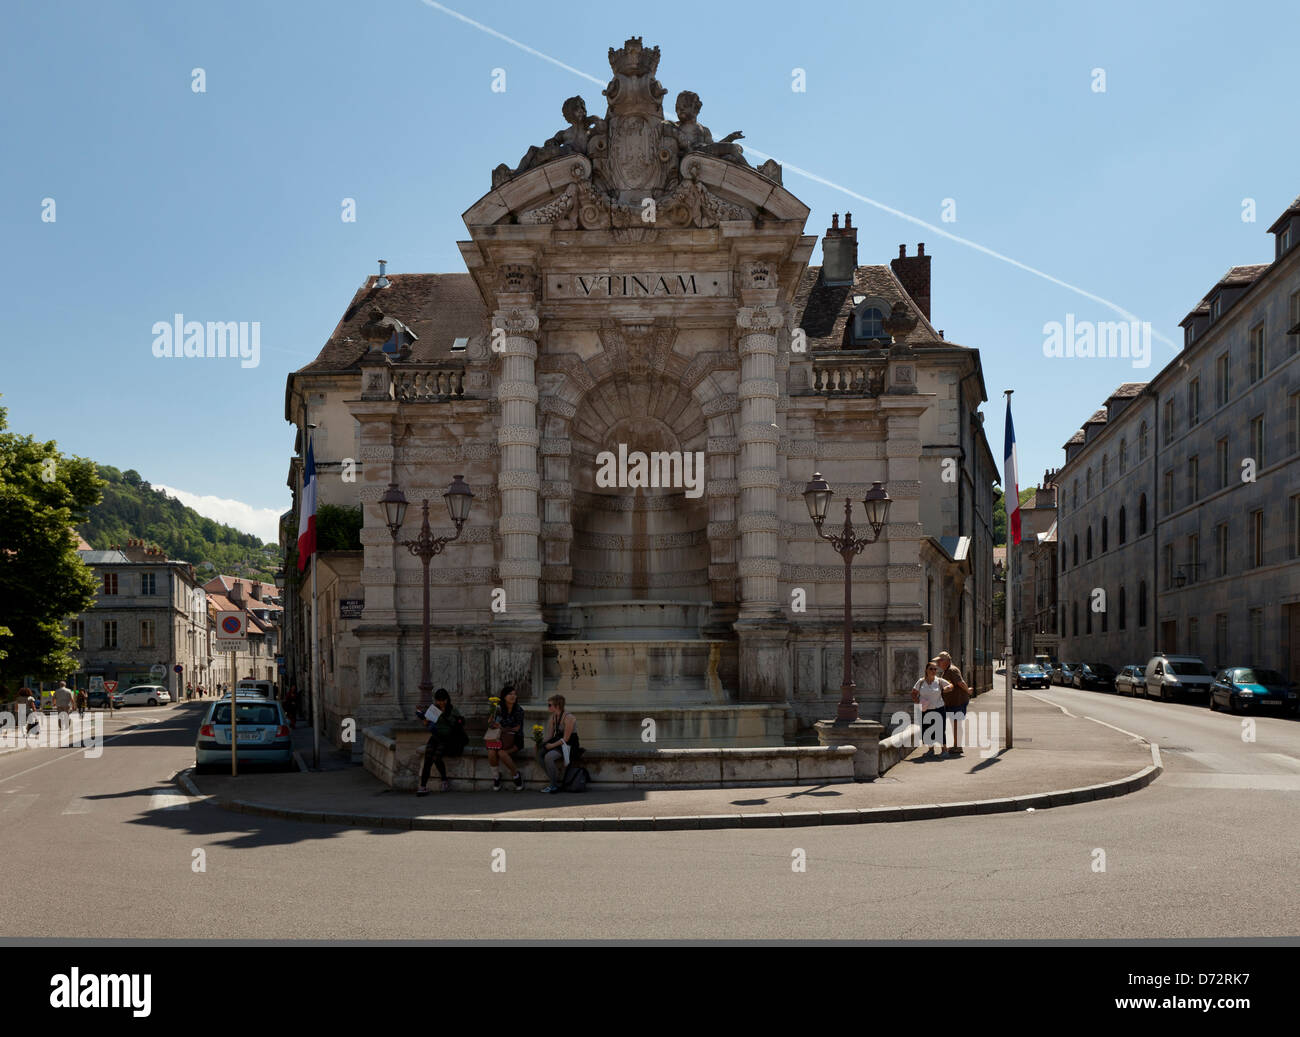 besancon france fountain at place jean cornet stock photo royalty free image 55996171 alamy. Black Bedroom Furniture Sets. Home Design Ideas